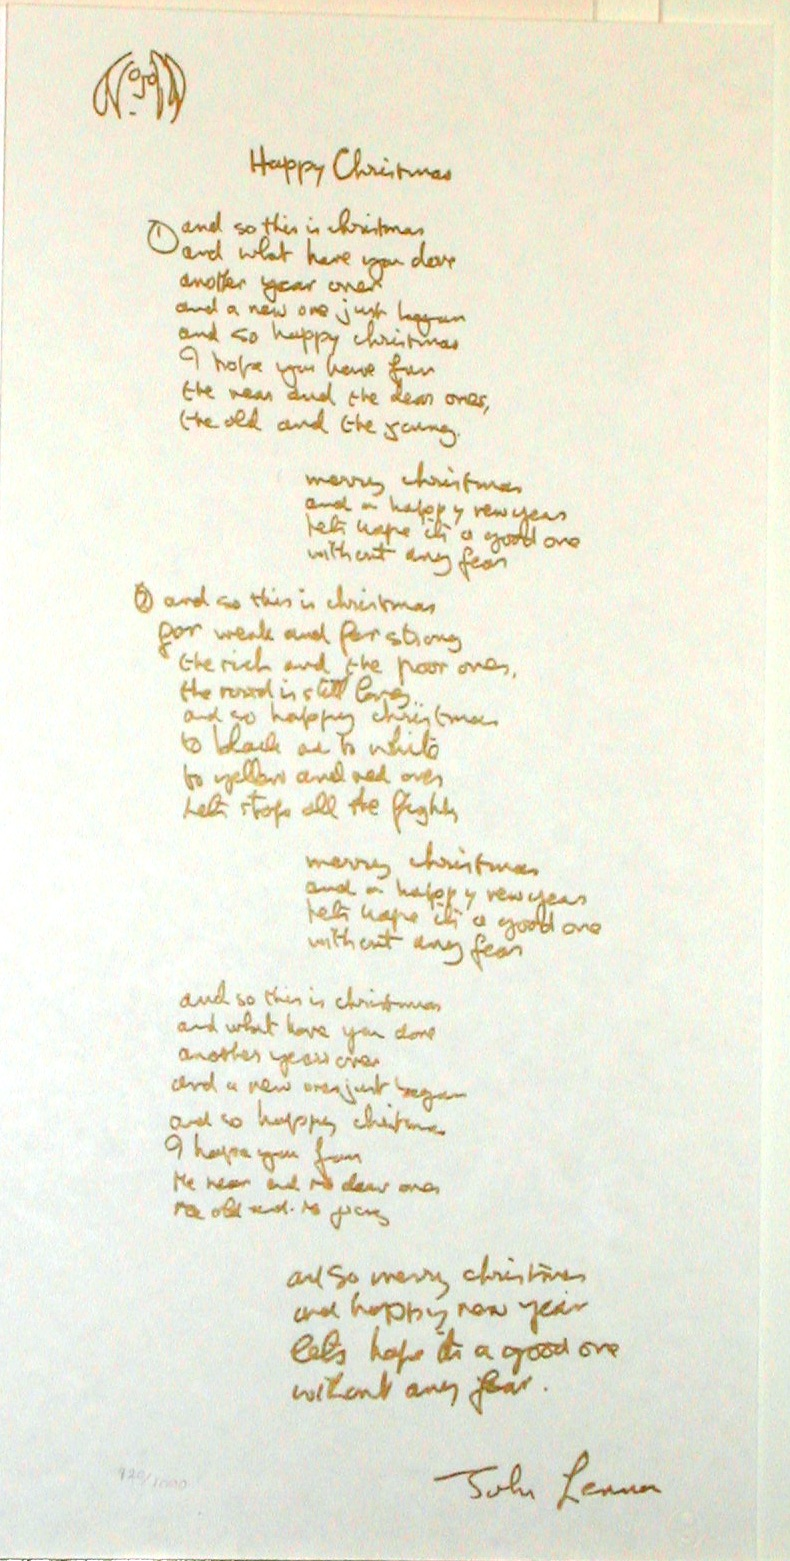 Happy Christmas lyric Artwork By John Lennon - Buy Art on Artplode